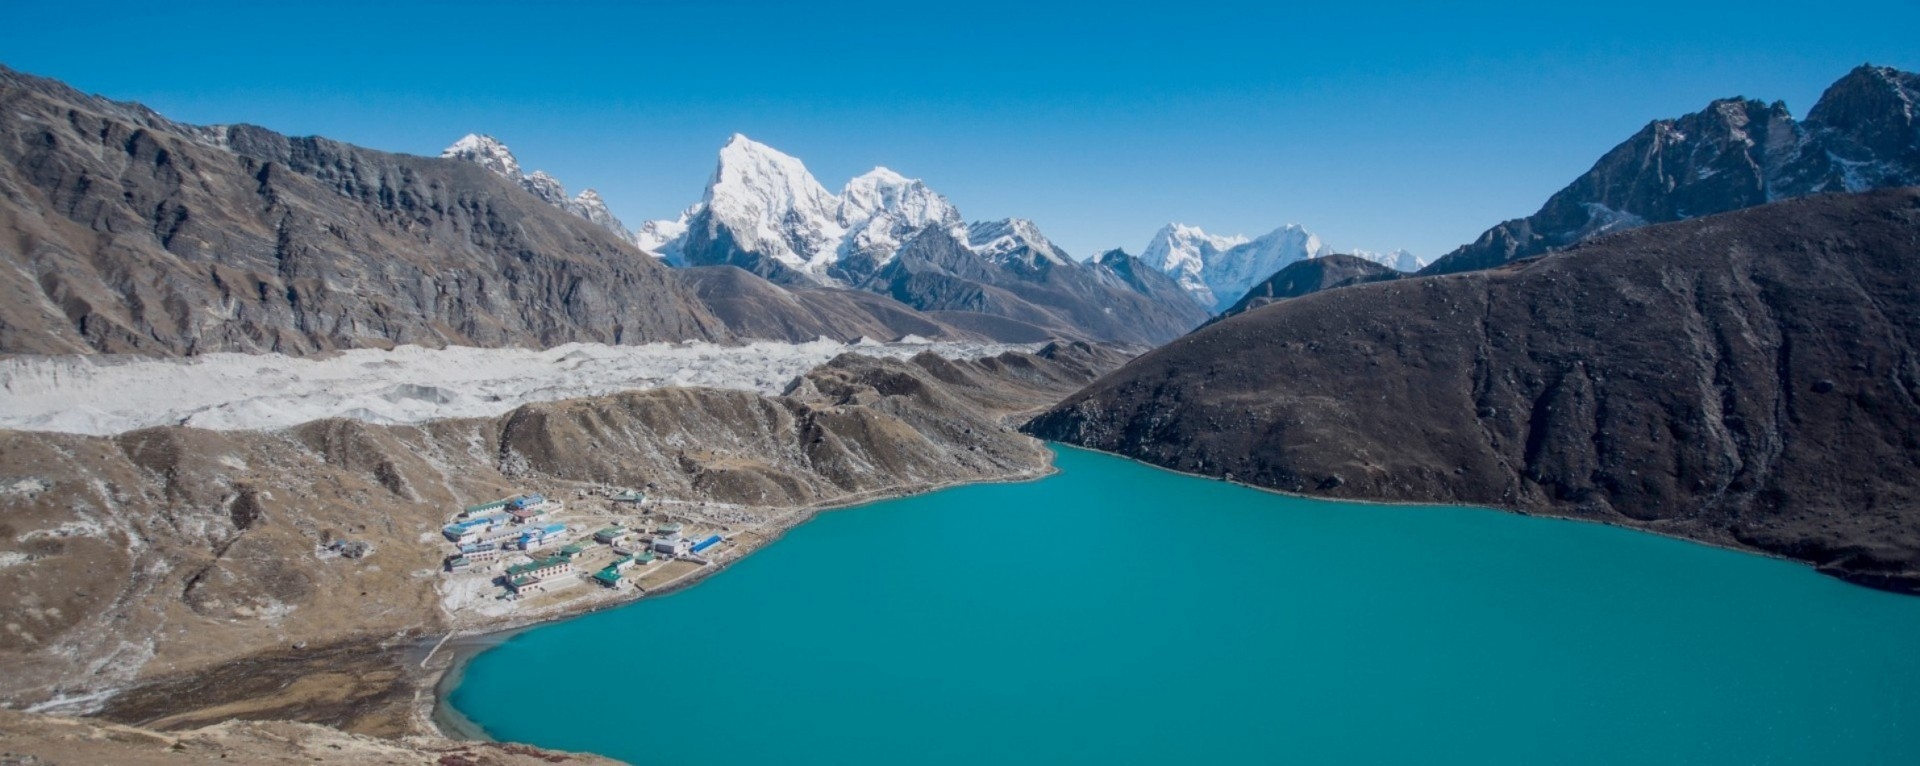 View of Gokyo Lakes, Ngzumpa Glacier